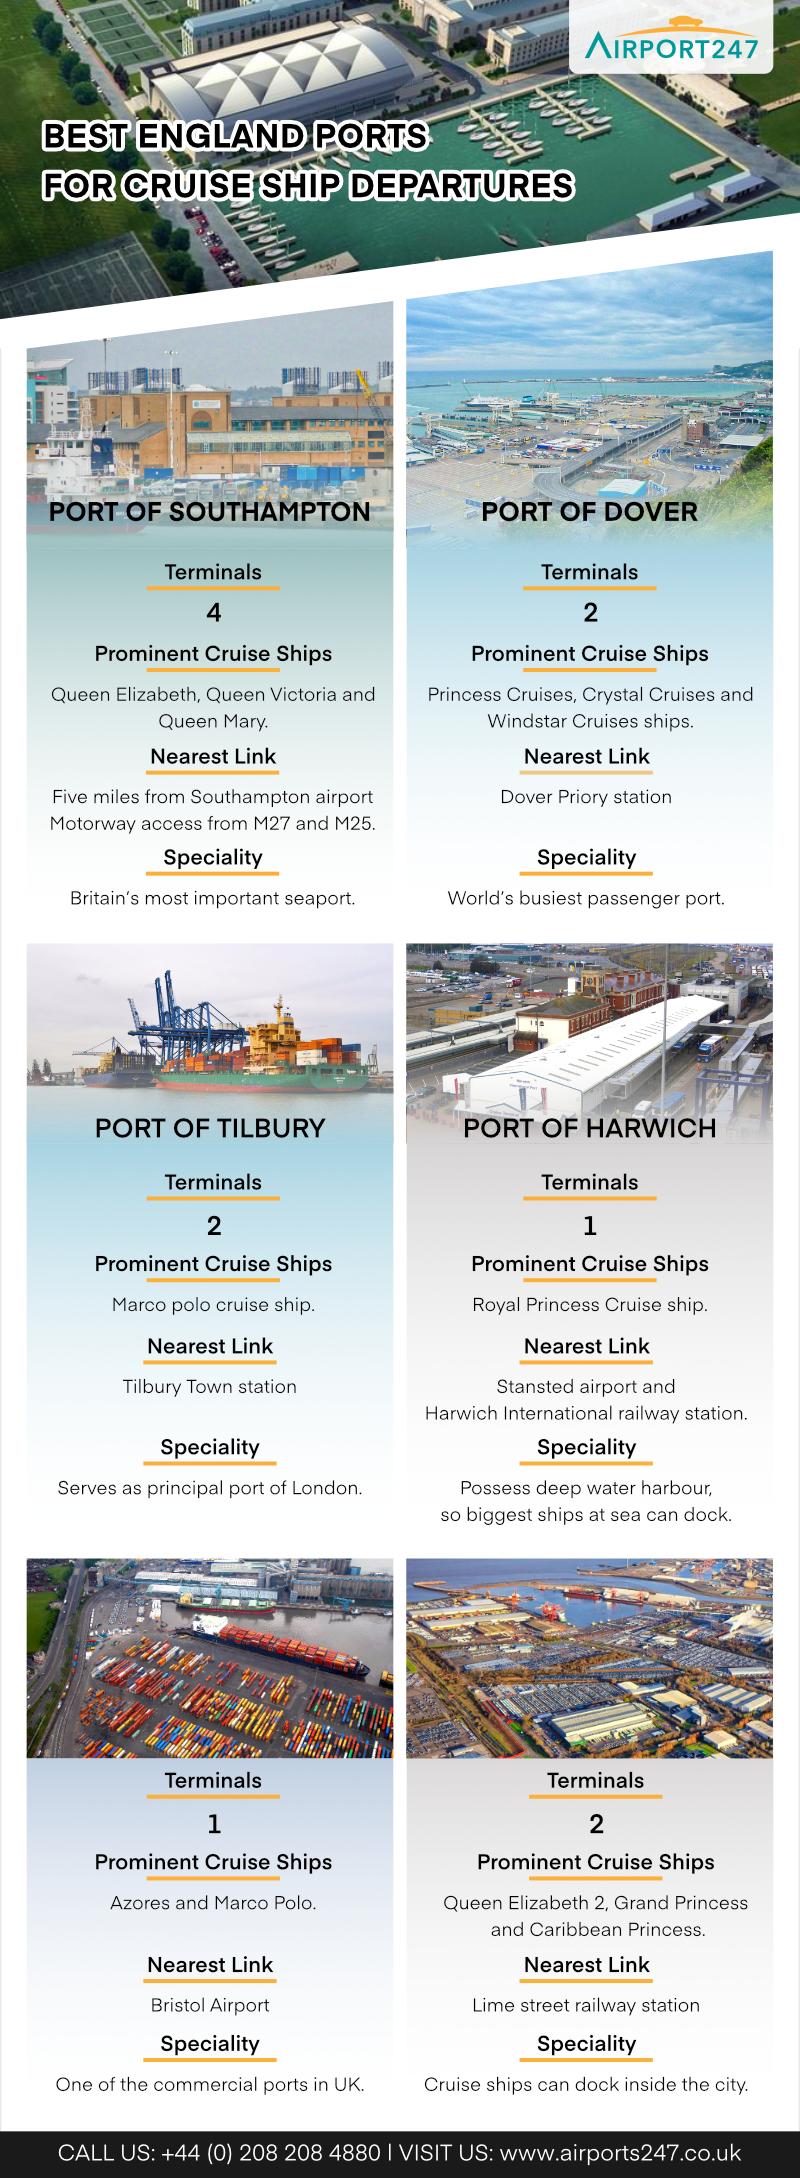 Best England Ports For Cruise Ship Departures Cruise Ship Cruise Southampton Port